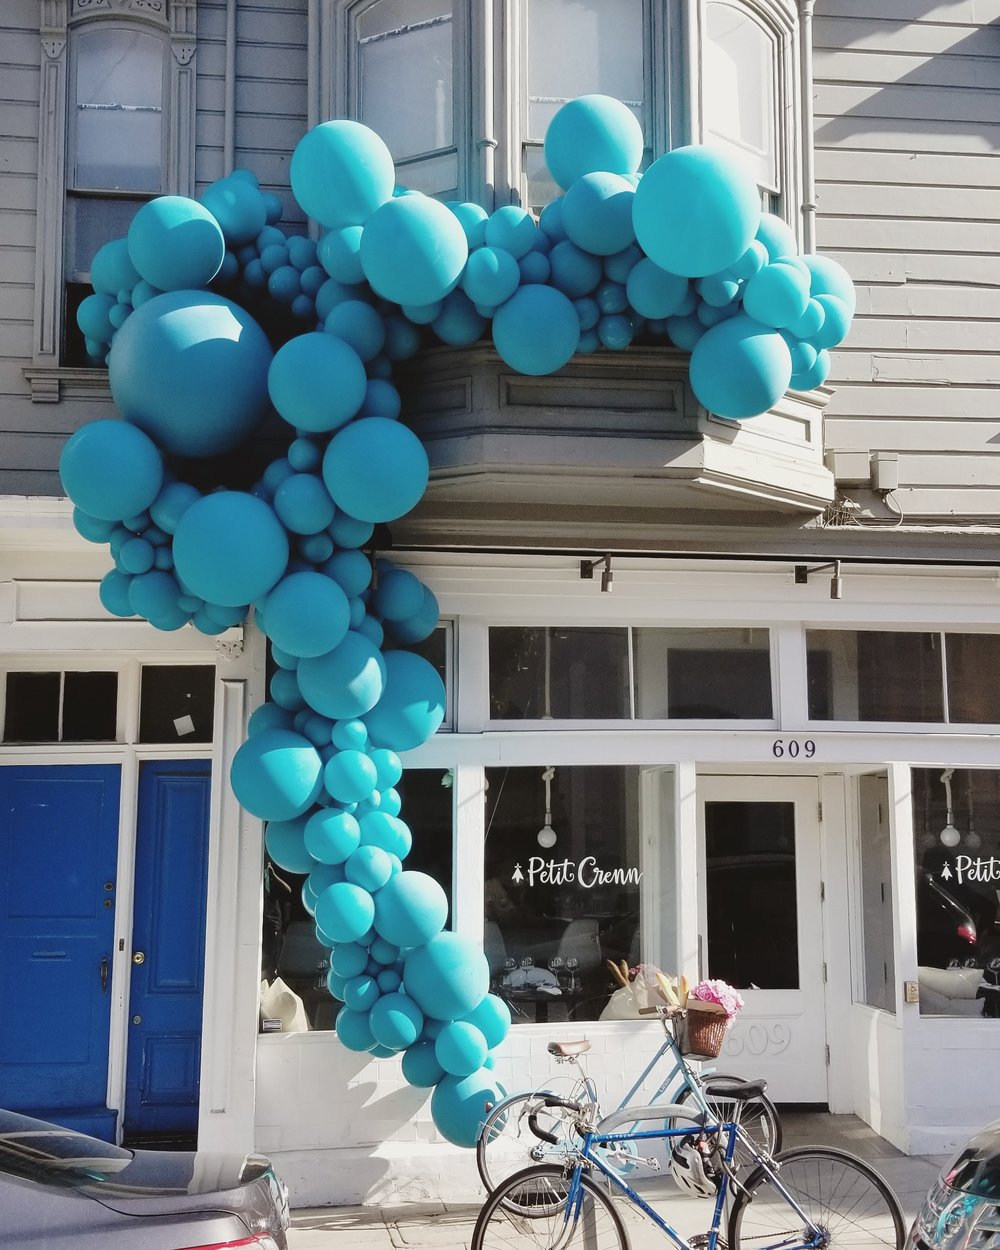 Balloon Installation _ Oranic Balloon Garland _ San Francisco SF Balloon Company _ Zim Balloons.jpg